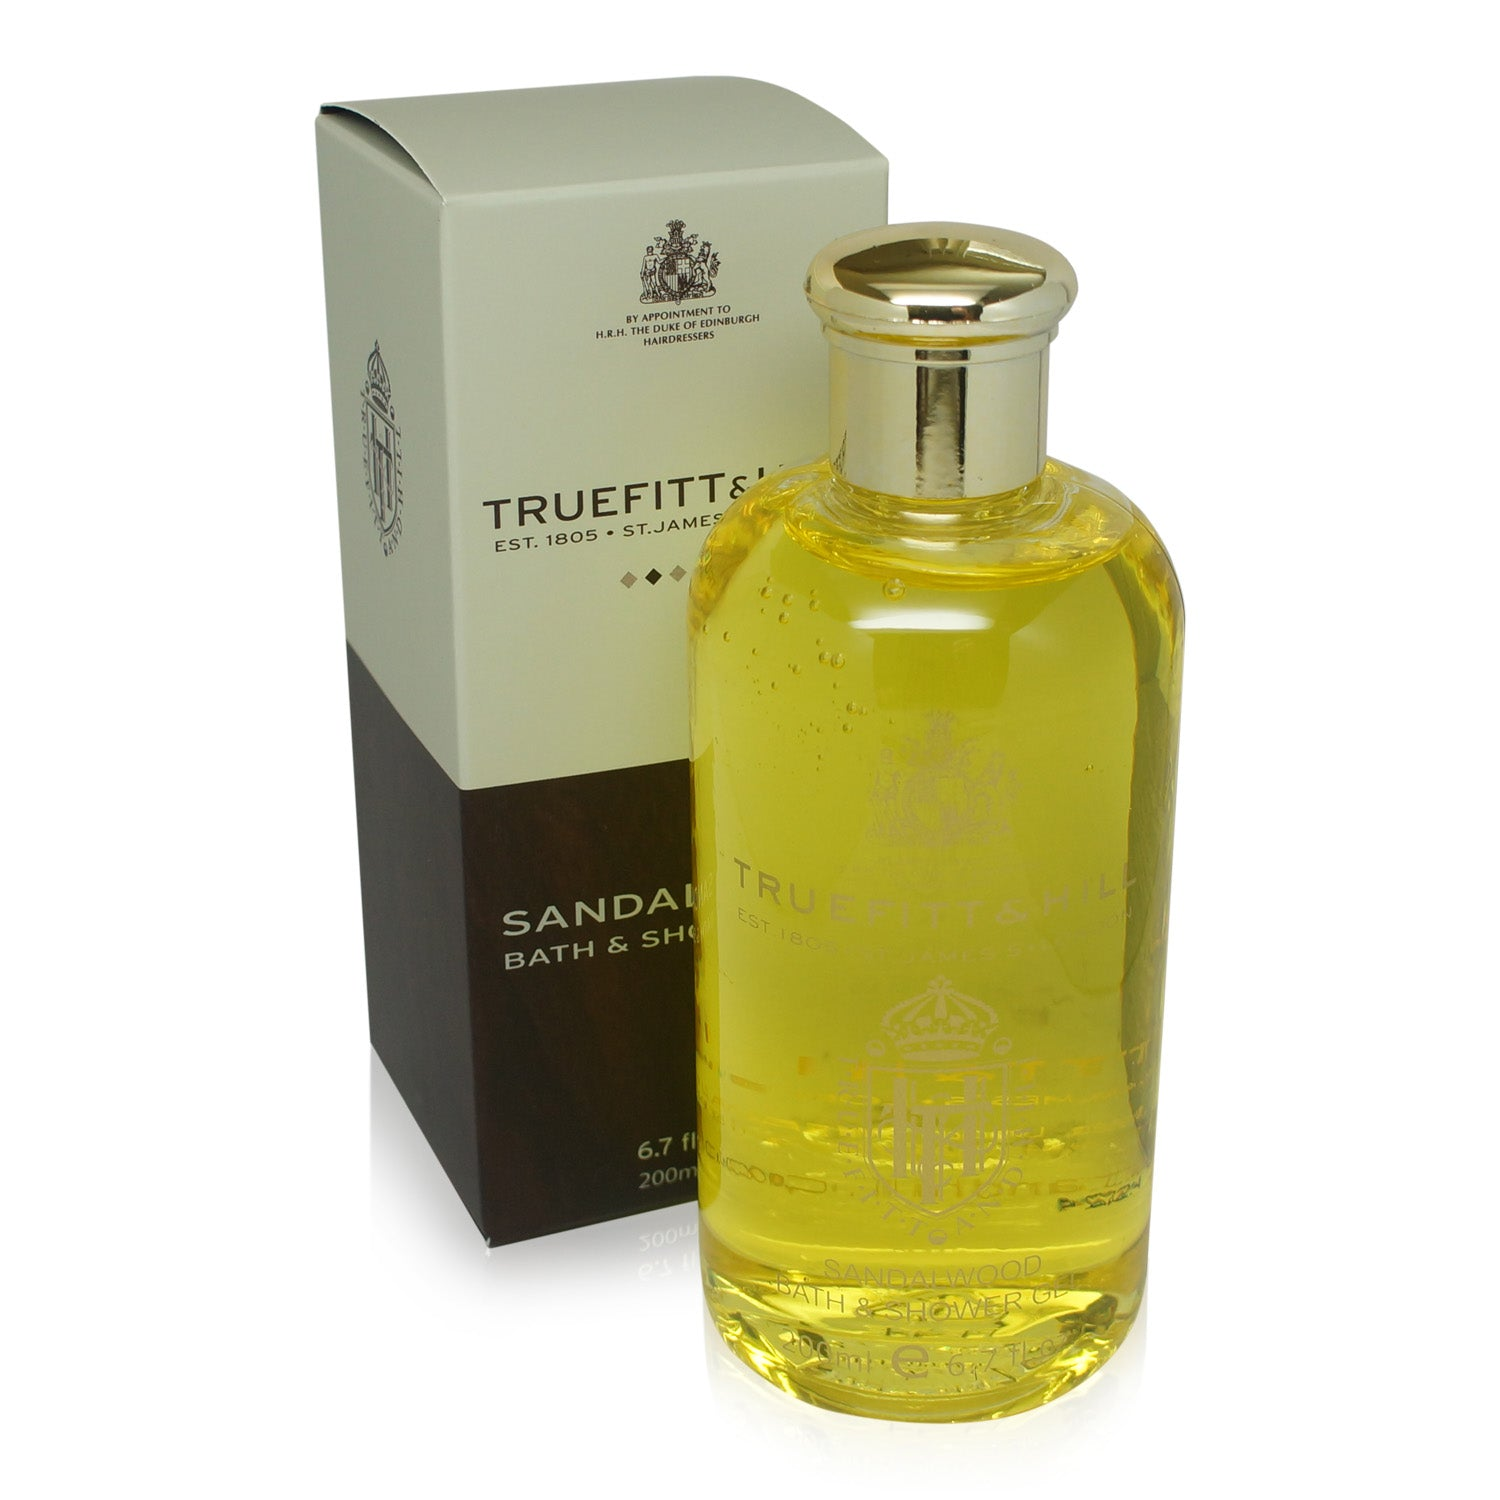 TRUEFITT ~ SANDALWOOD BATH & SHOWER GEL